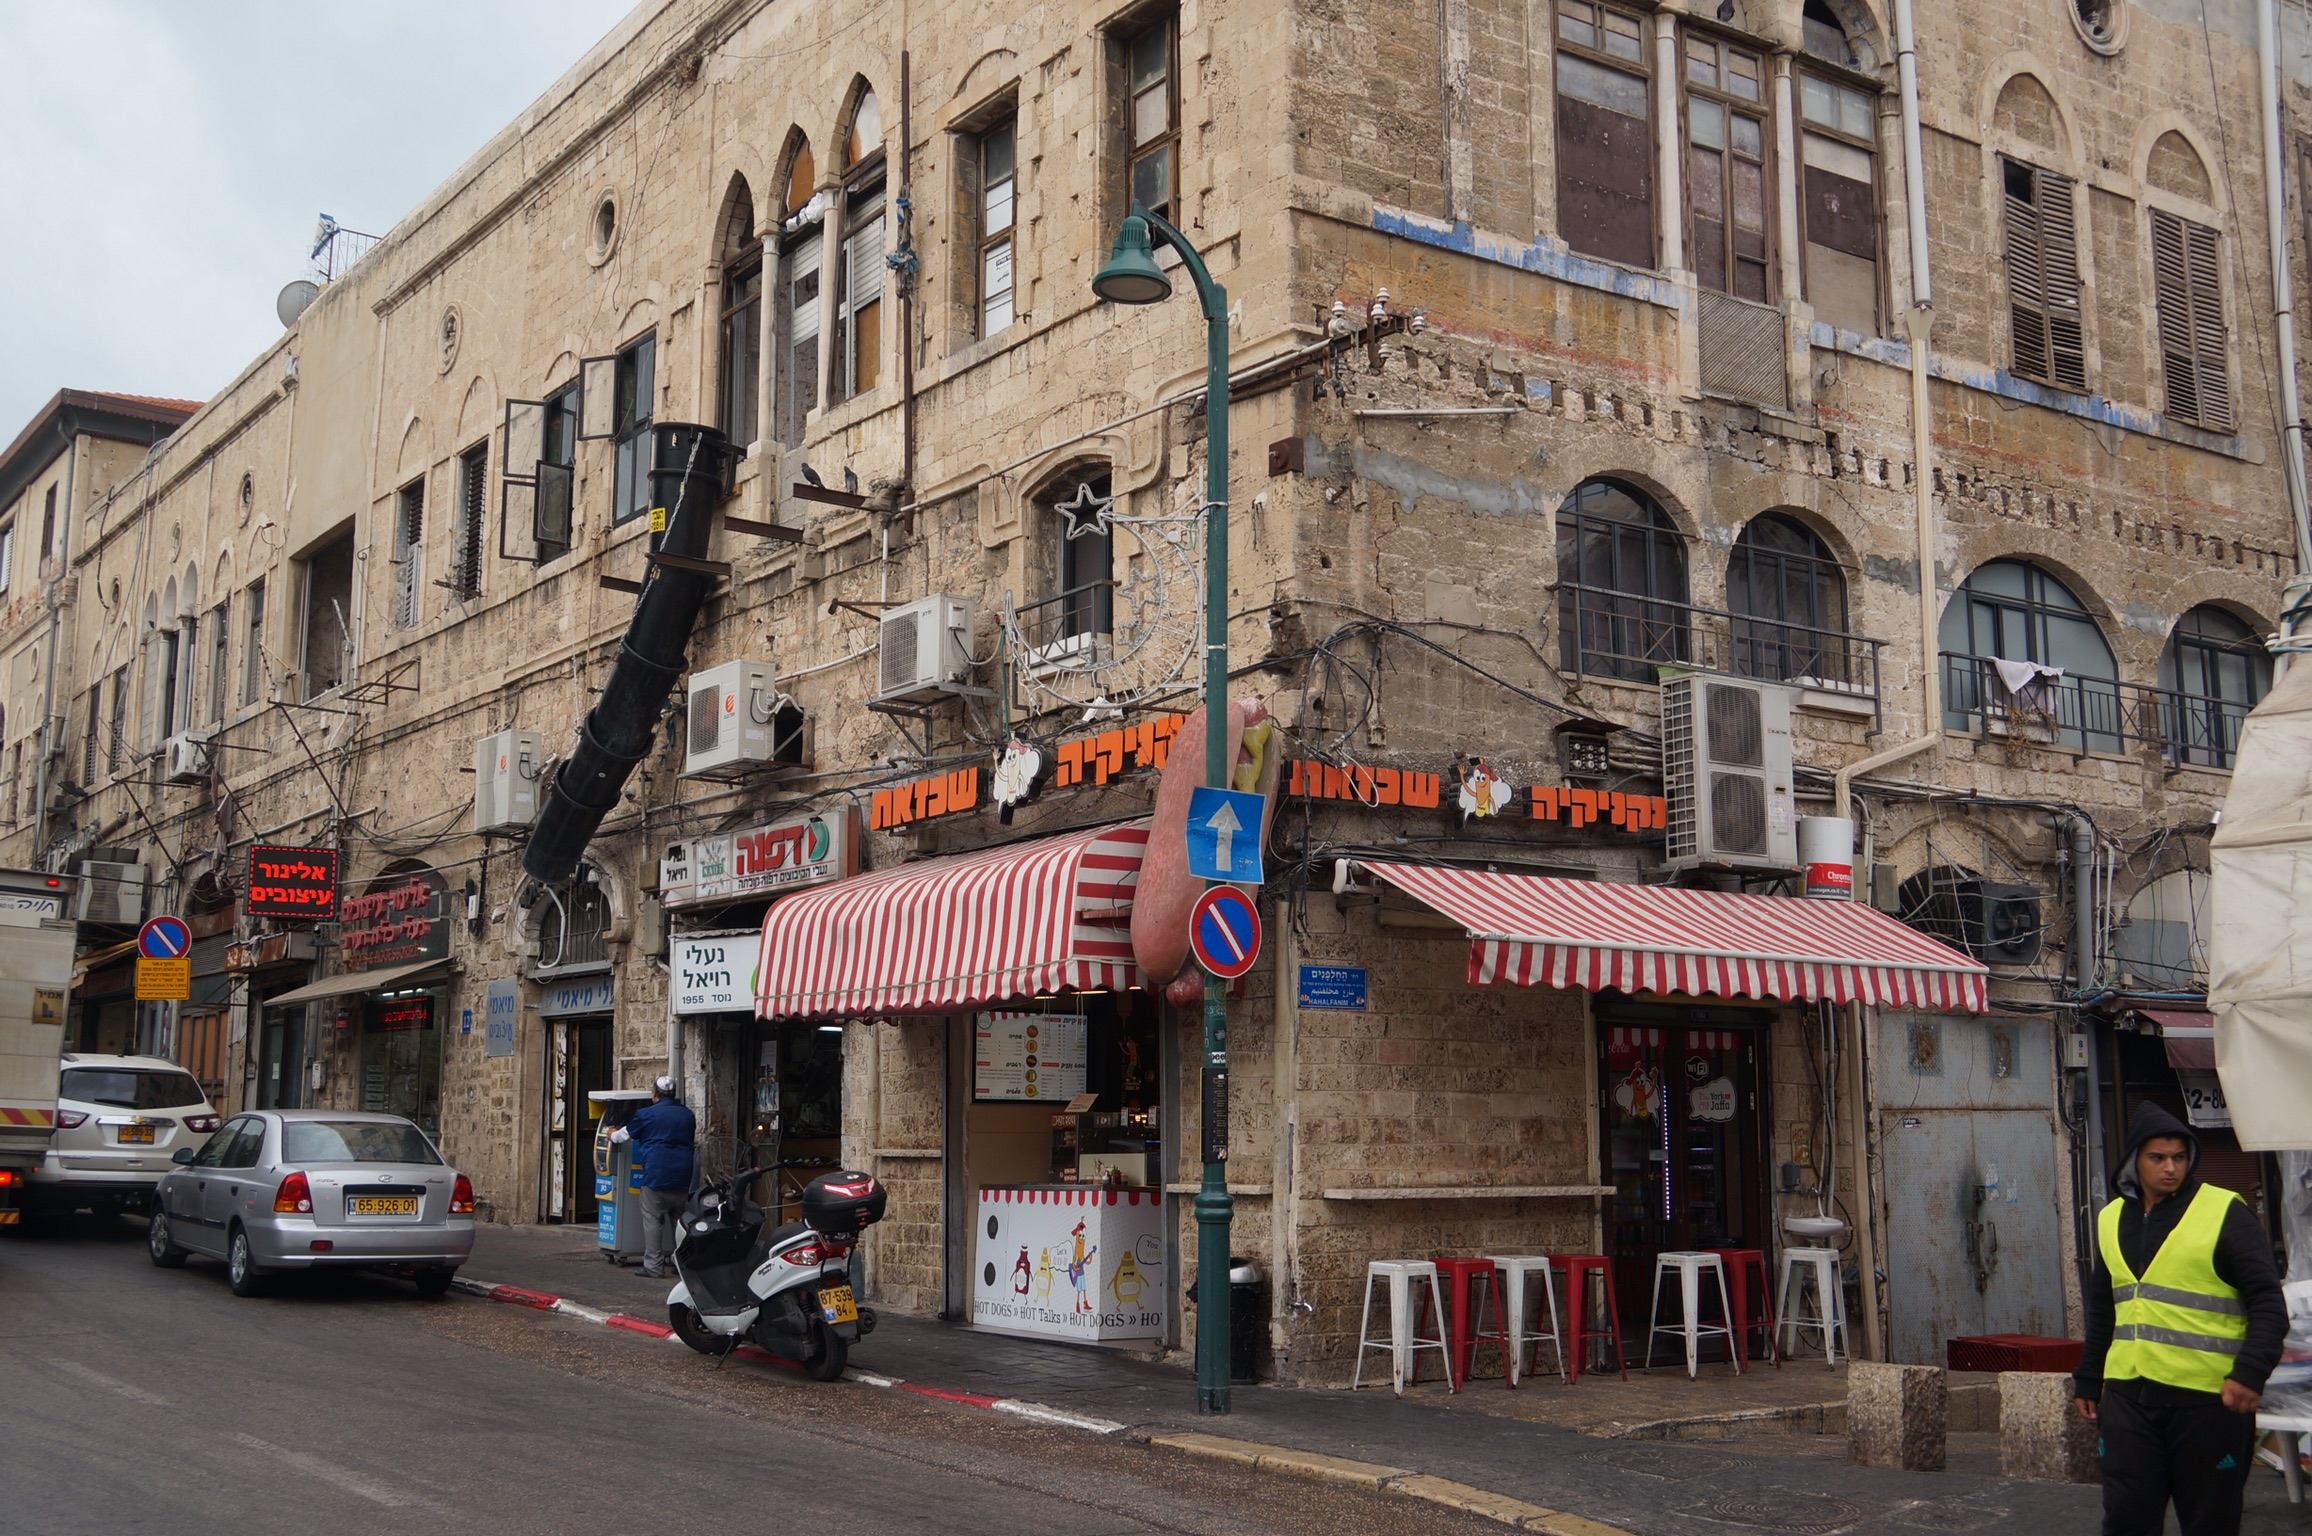 The Old City of Jaffa